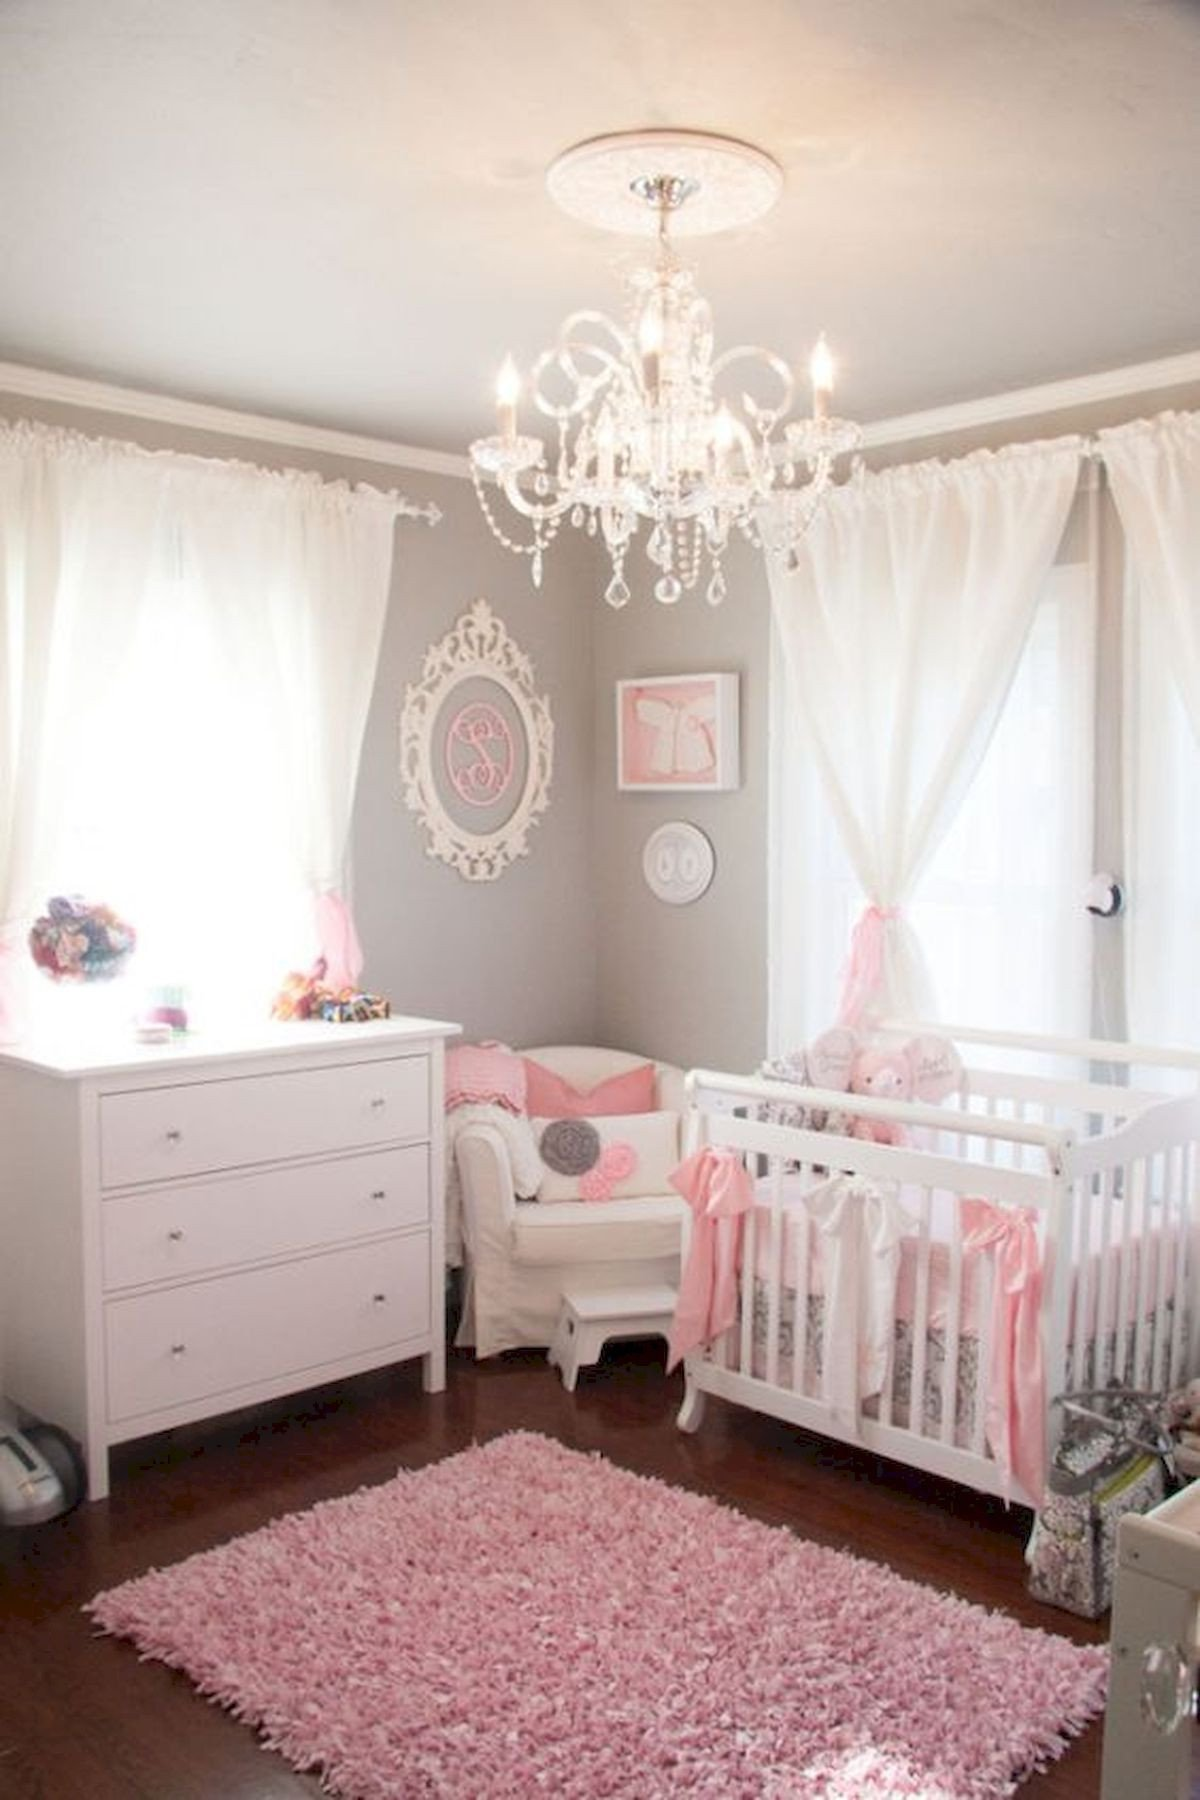 Baby Girl Bedroom Ideas Luxury 33 Adorable Nursery Room Ideas for Baby Girl